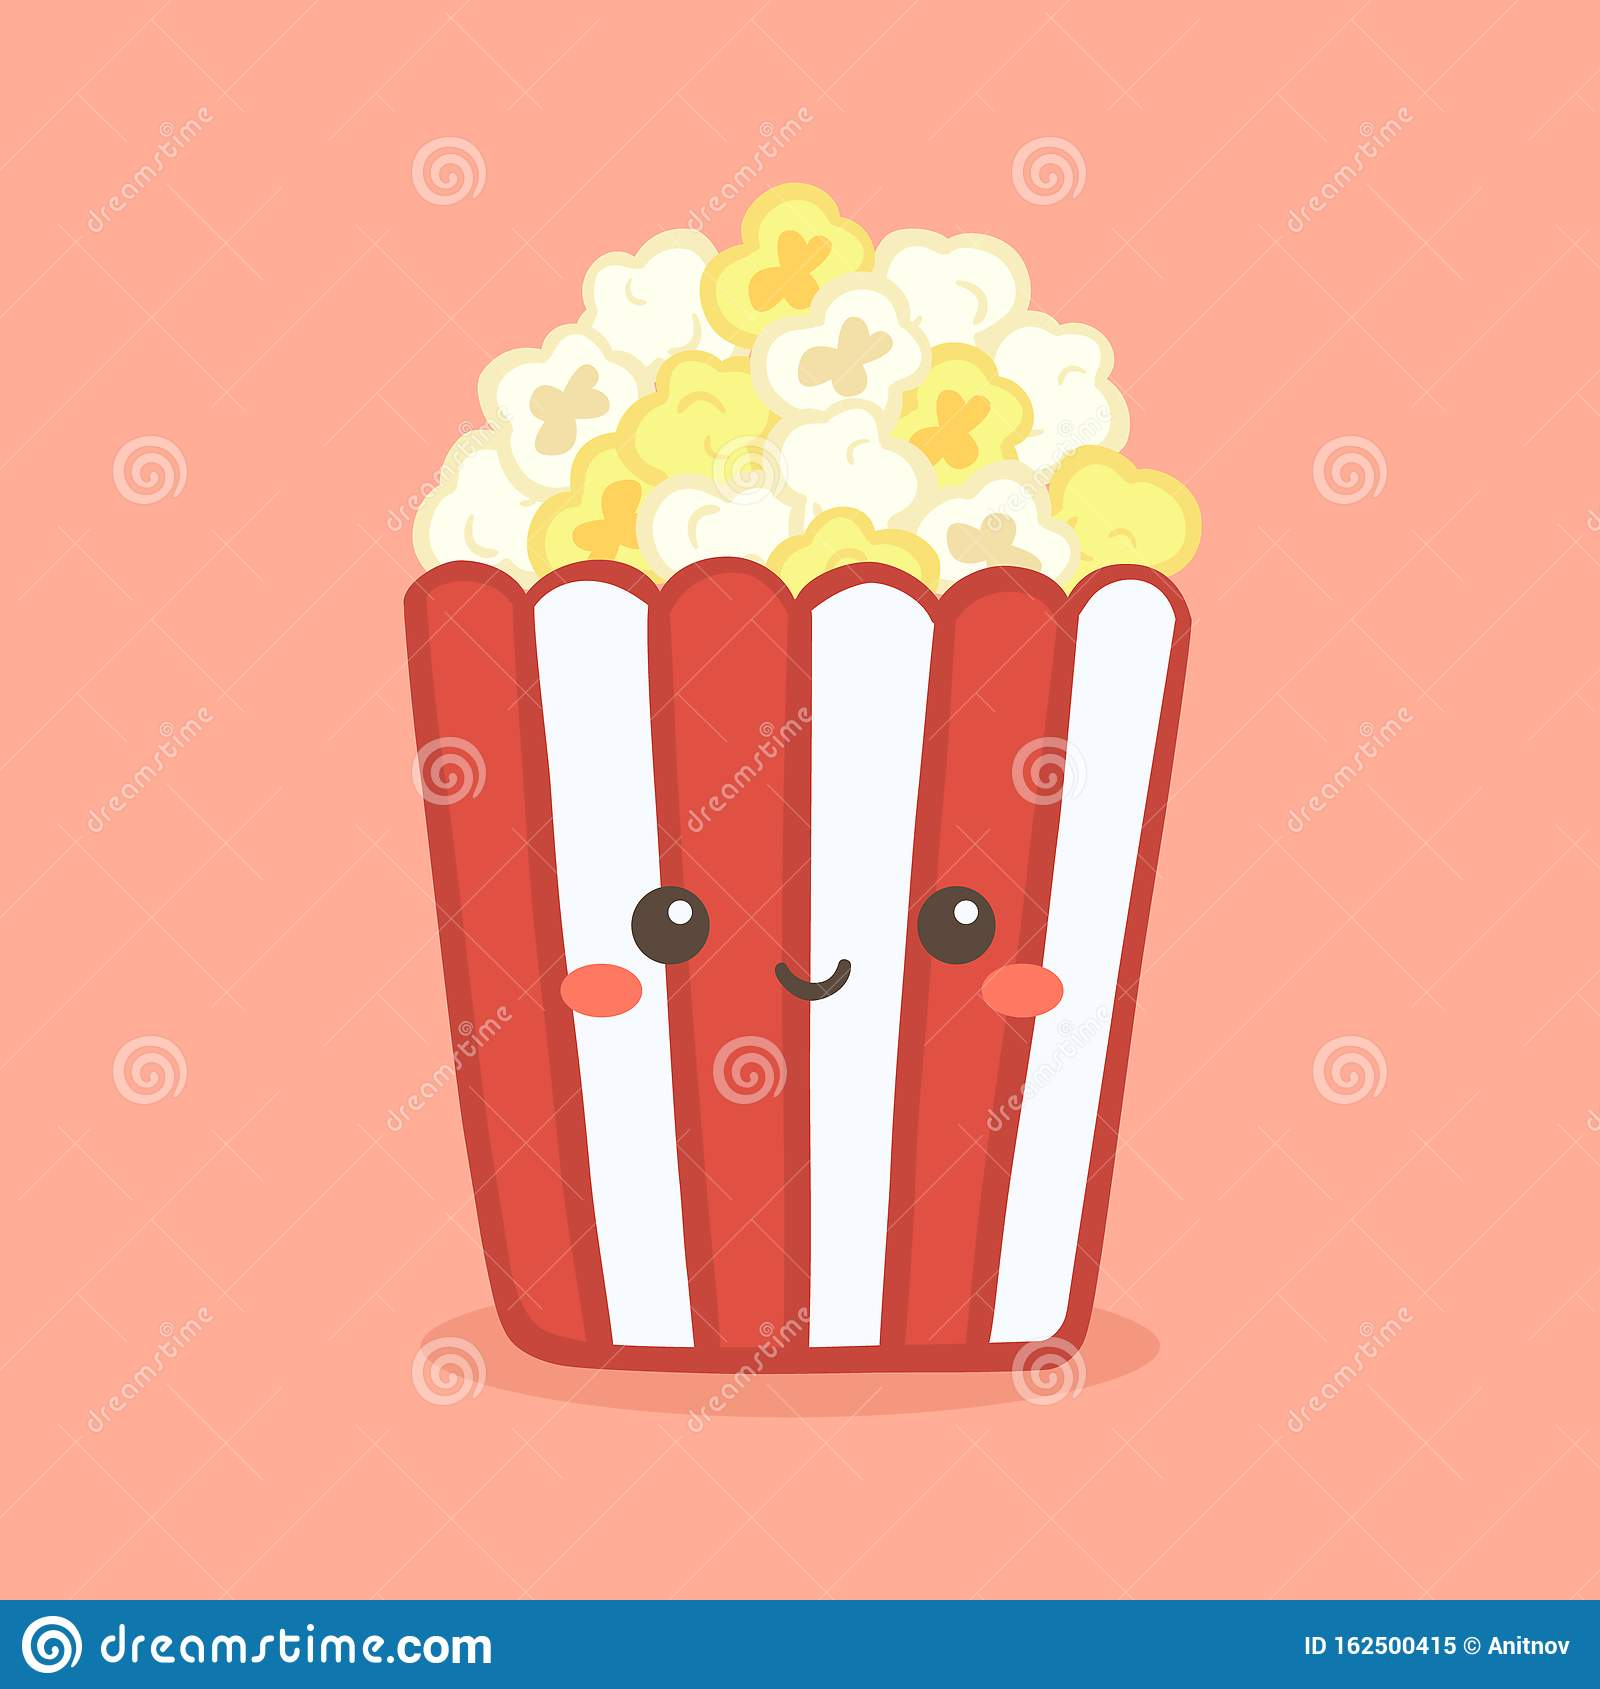 Cute Pop Corn Popcorn In Red Bucket Box Cinema Snack Vector Stock Vector Illustration Of Character Bucket 162500415